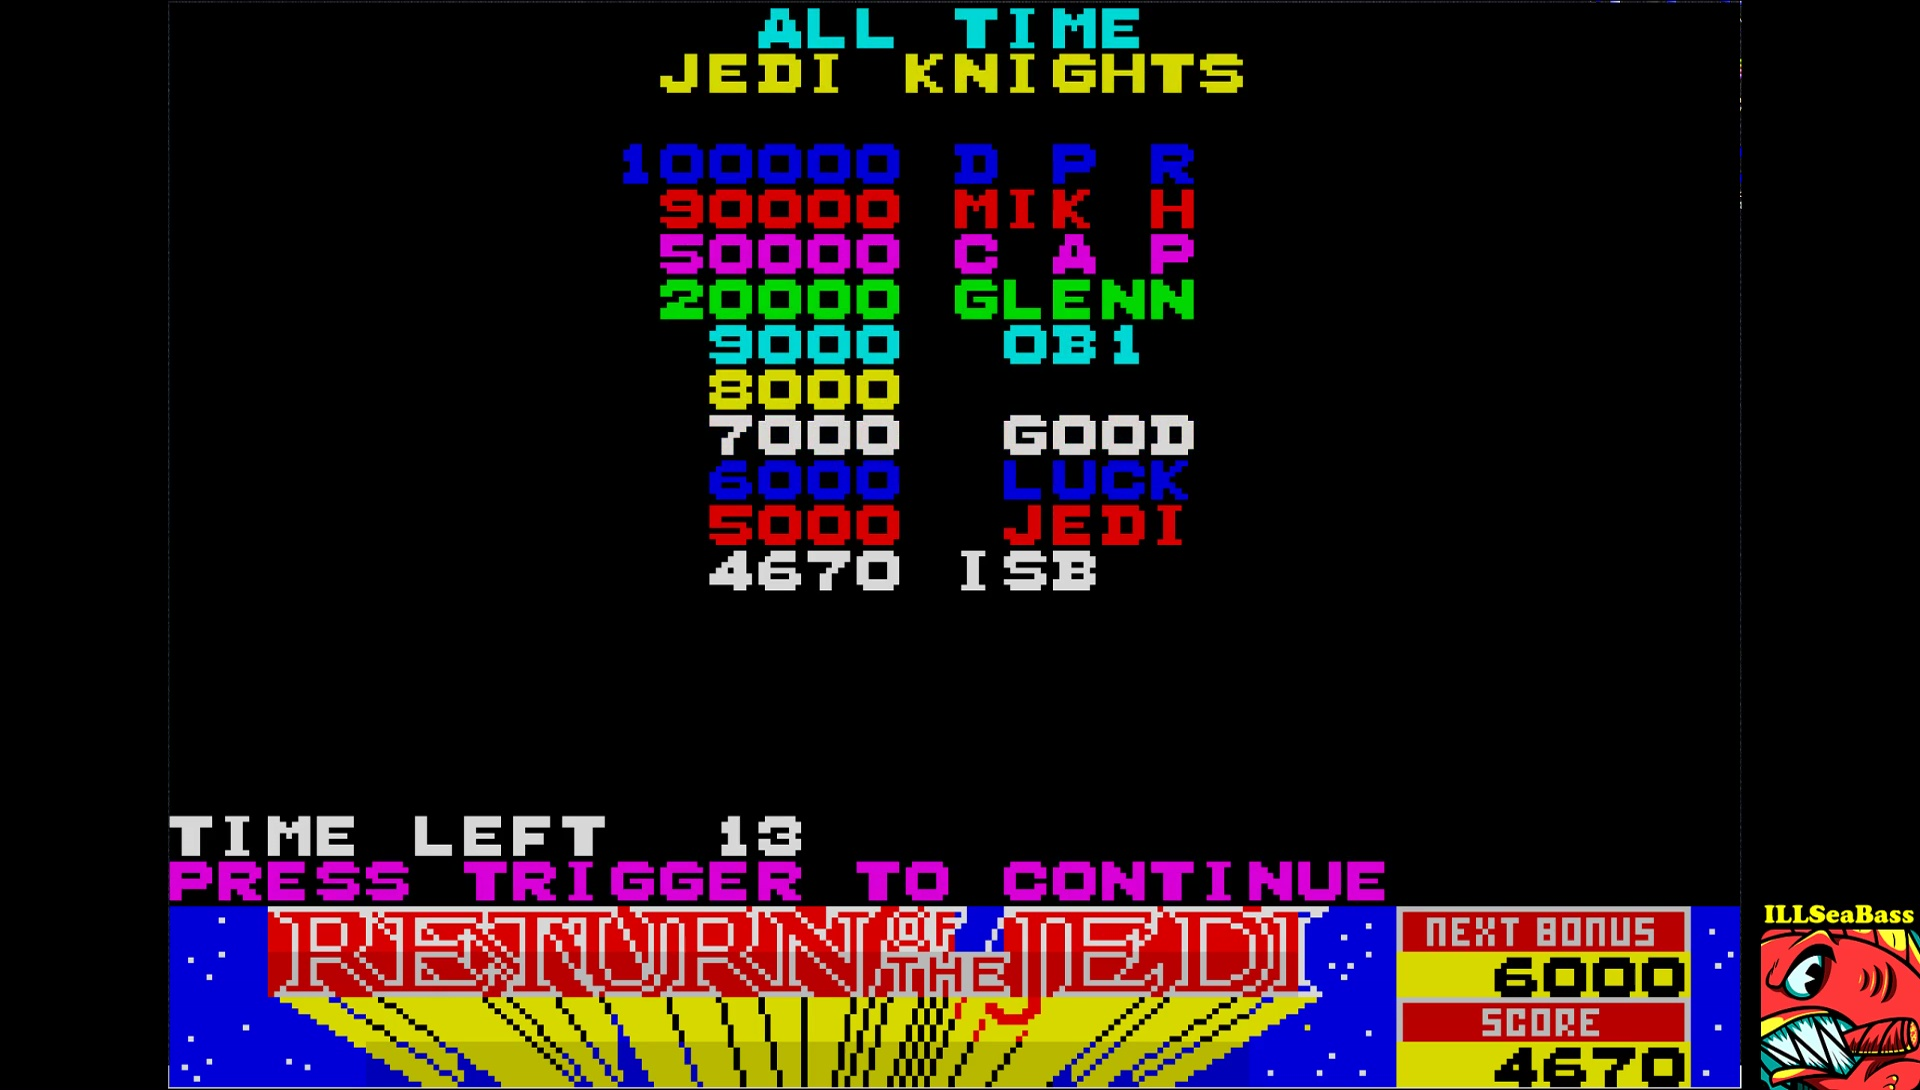 ILLSeaBass: Return of the Jedi [Start Level: Easy] (ZX Spectrum Emulated) 4,670 points on 2017-06-17 19:46:10